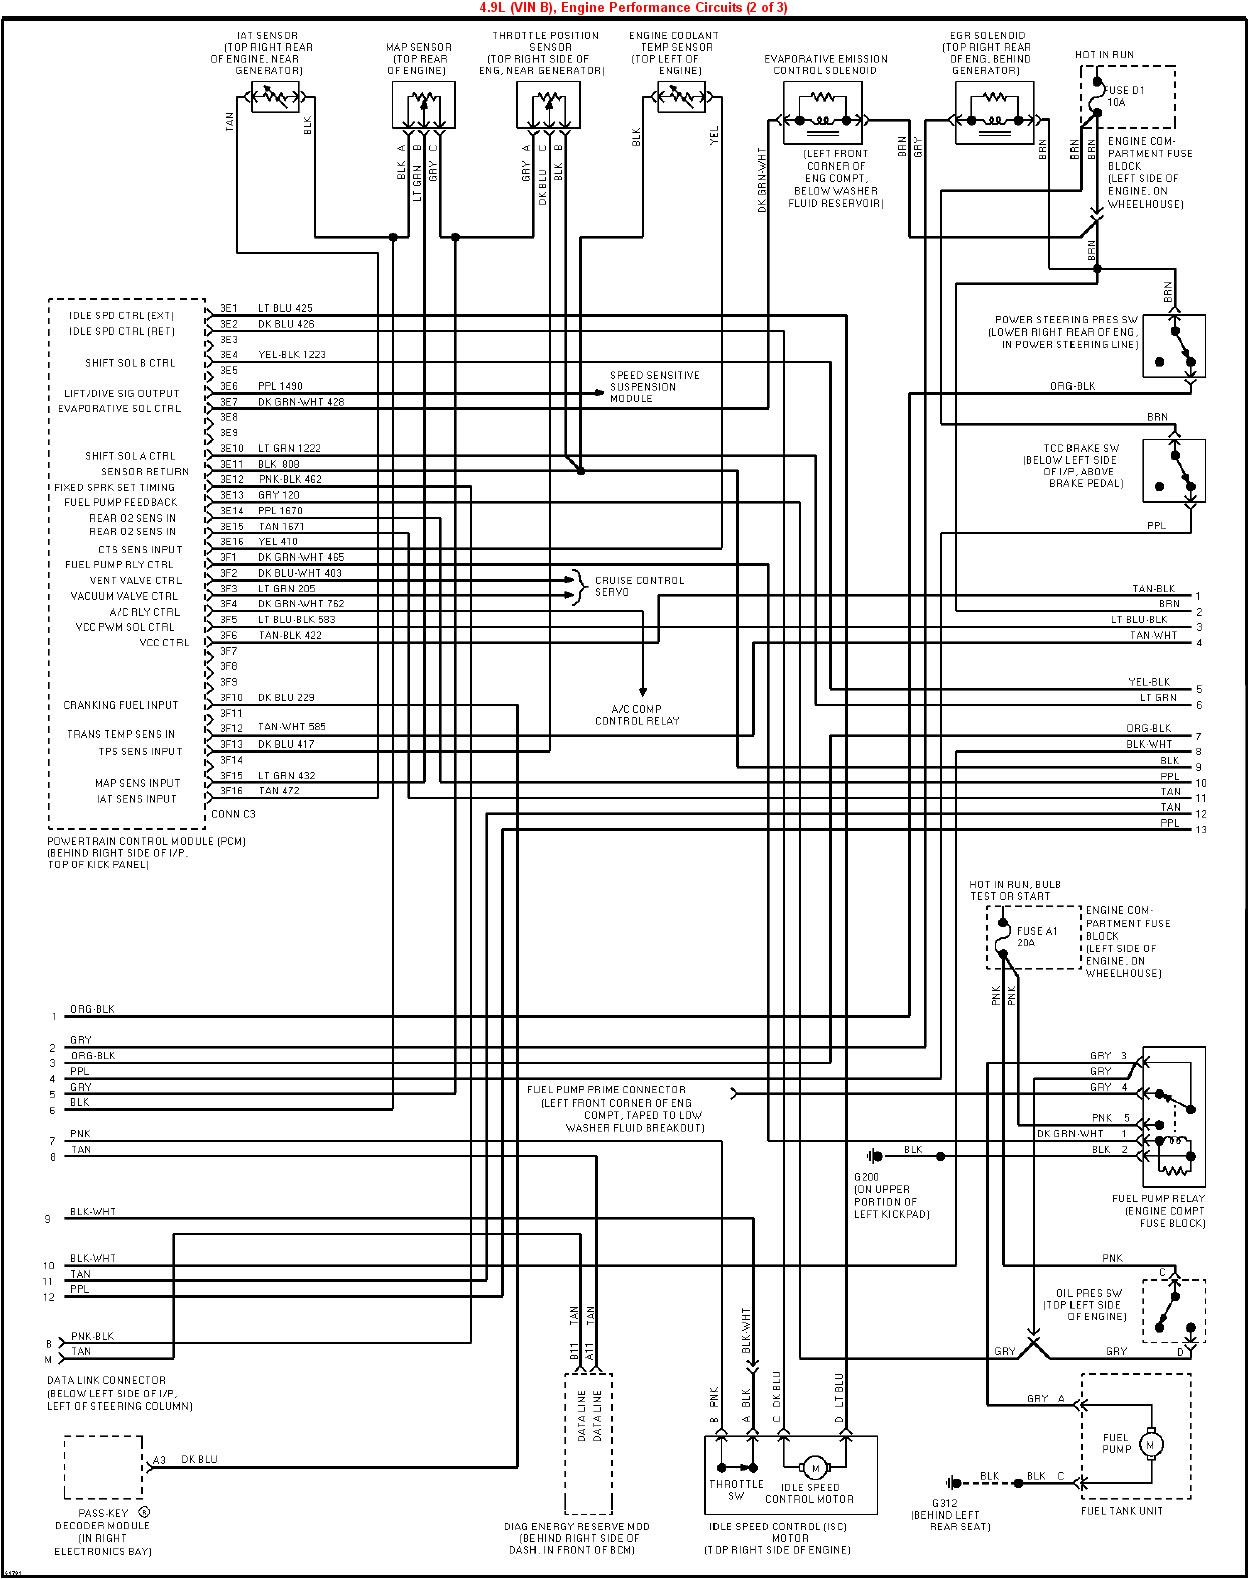 wiring diagram 2000 pontiac grand am gt pdf with 1995 Cadillac Deville Wiring Diagrams on 2005 Ford Explorer Window Fuse likewise 246931 Rally Pac Tach Question additionally P 0900c15280089a44 as well 3800 Series 2 Engine Diagram as well 1995 Cadillac Deville Wiring Diagrams.